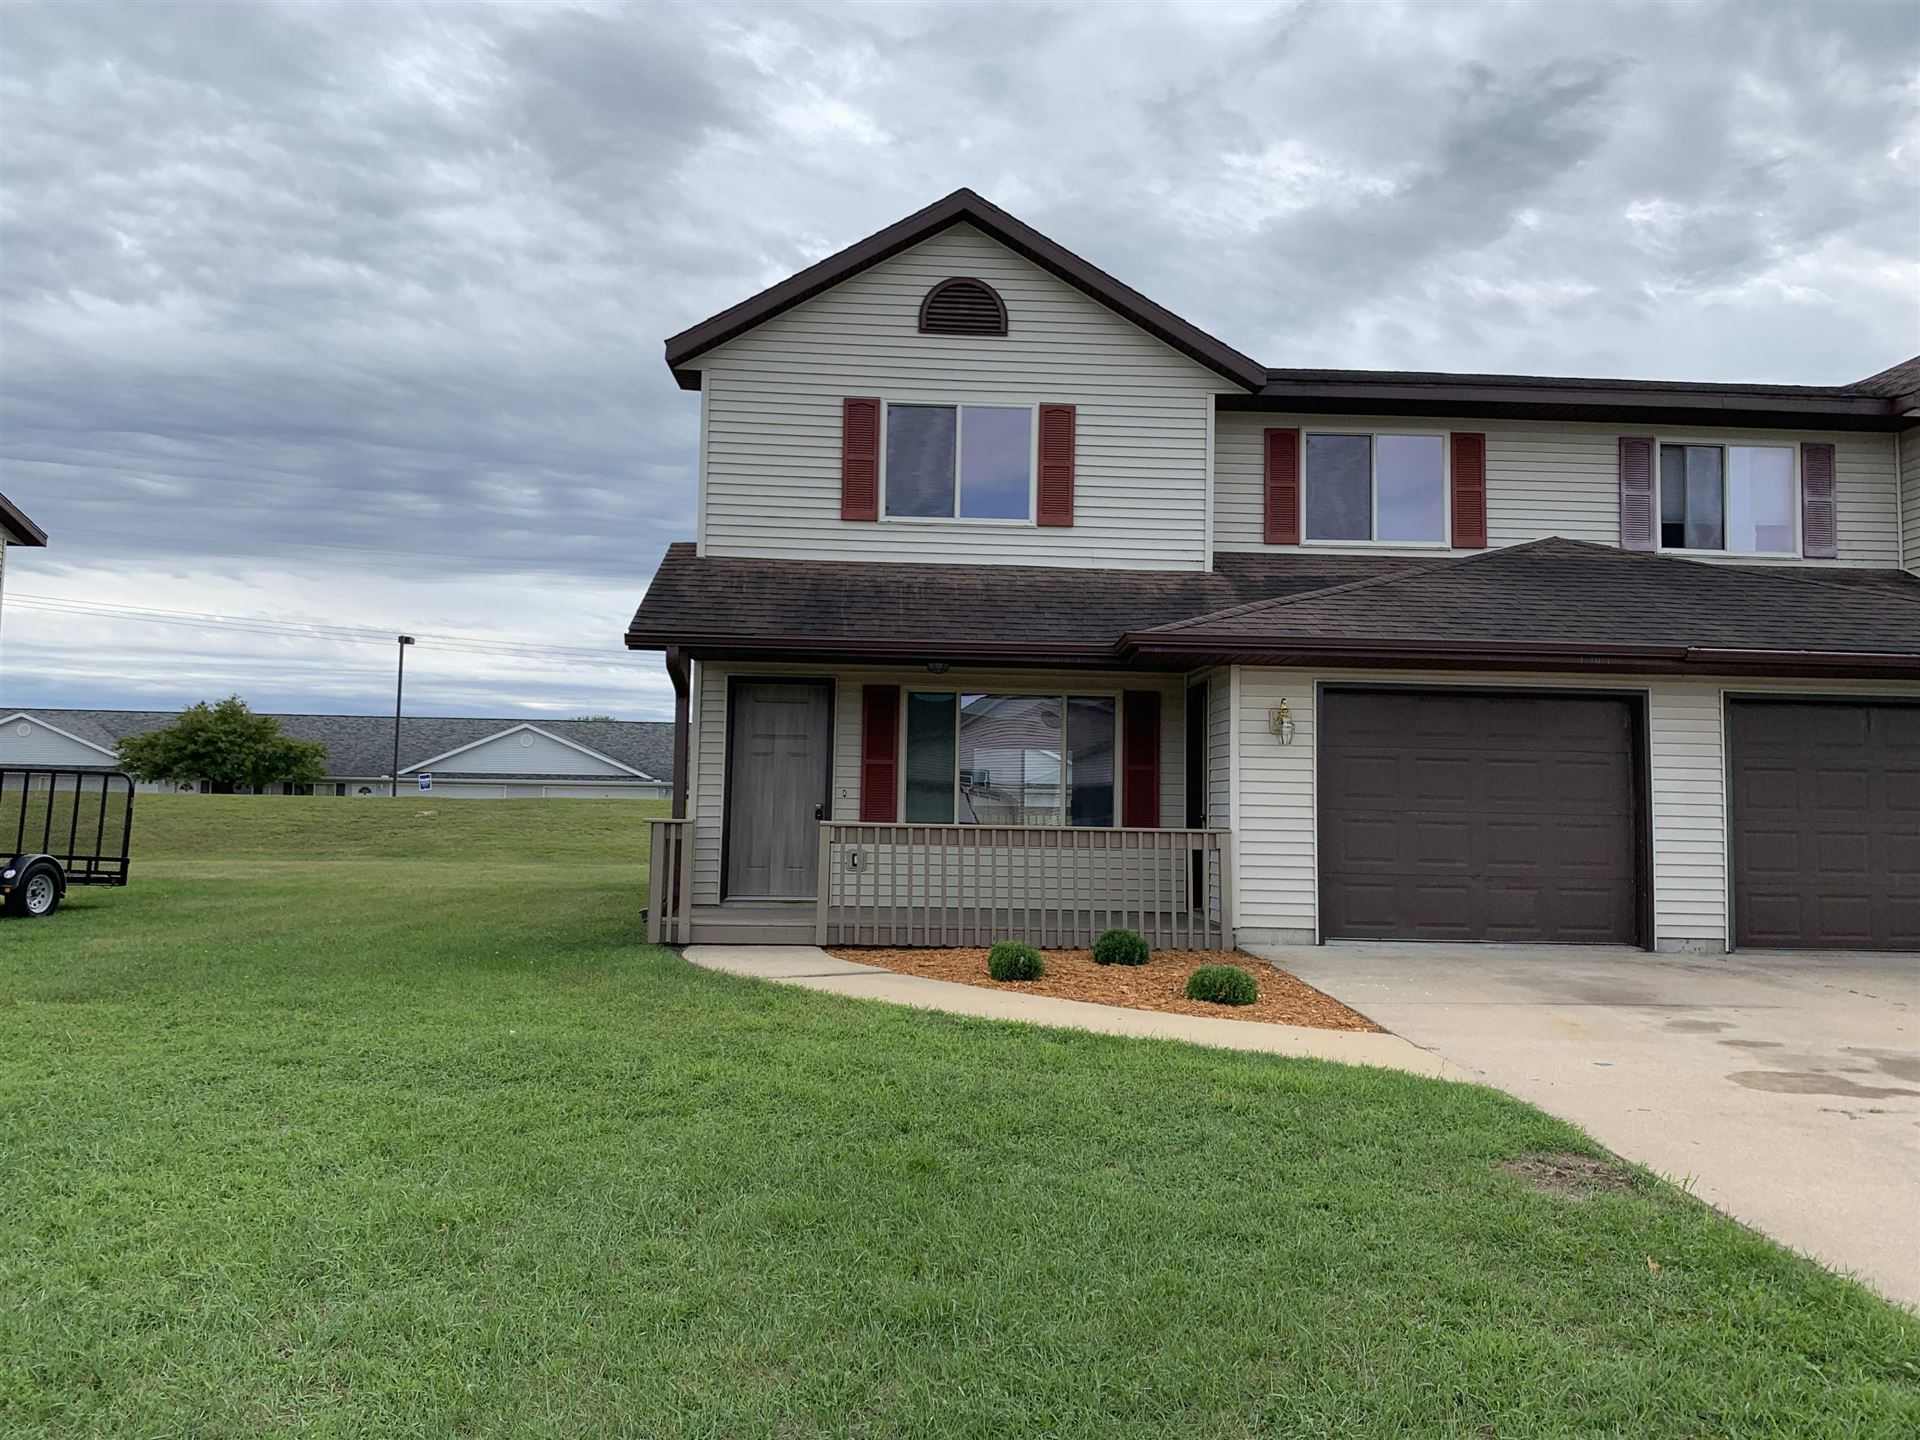 1981 River Rd, Sparta, WI 54656 - MLS#: 1707850